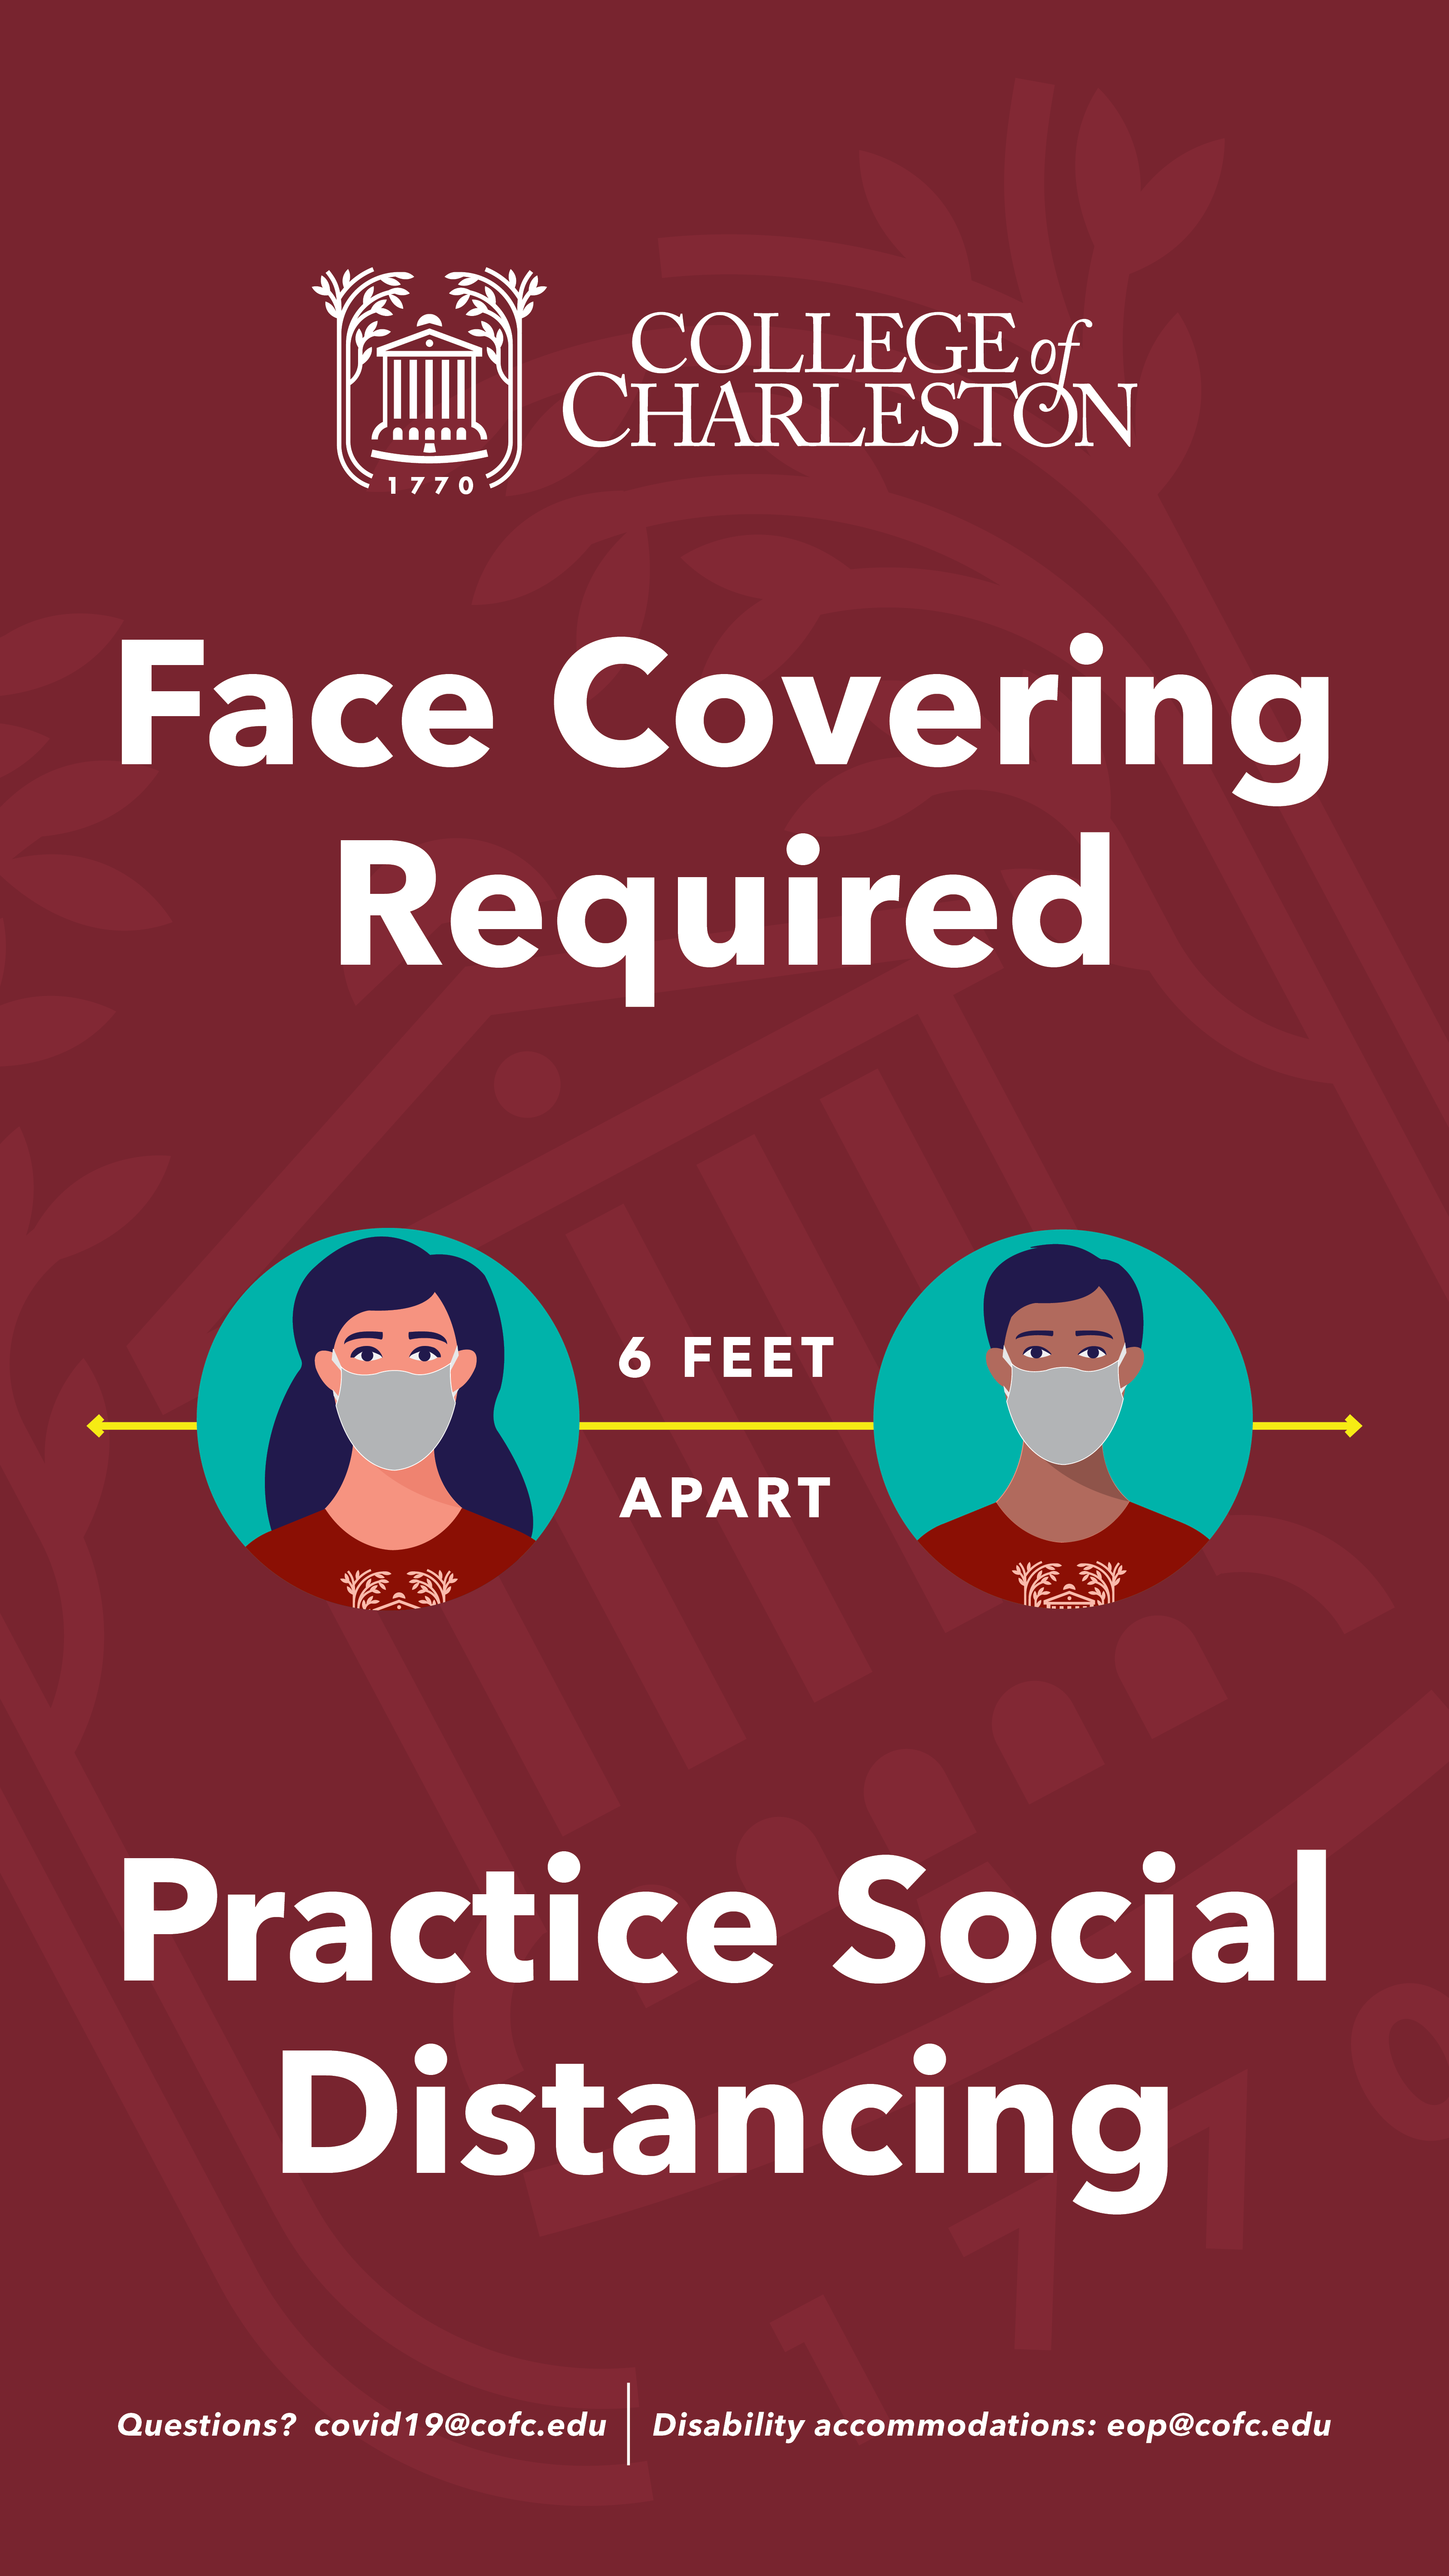 image of signage for Face Cover and Social Distancing for Kiosk